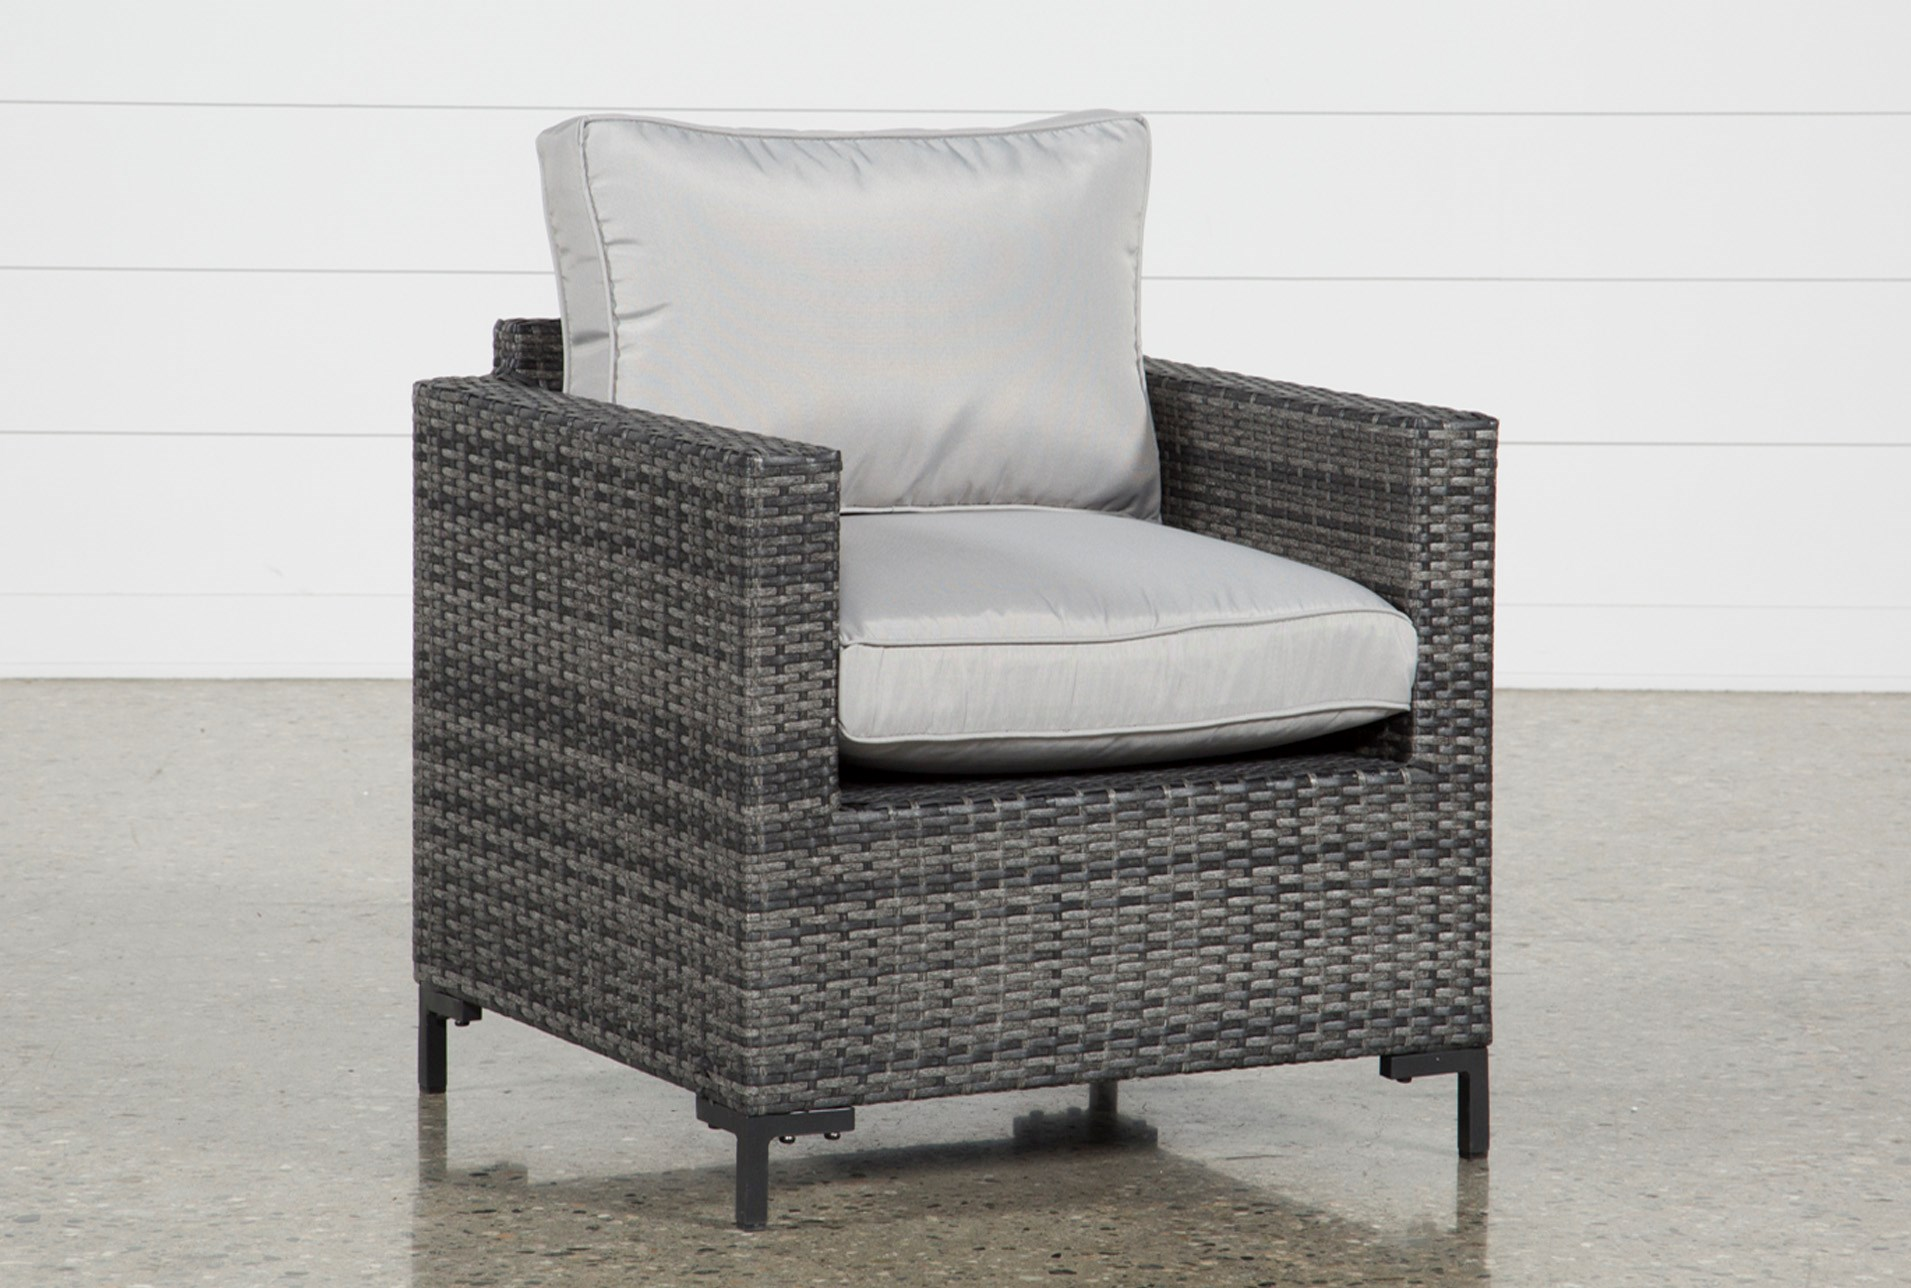 Outdoor domingo lounge chair qty 1 has been successfully added to your cart